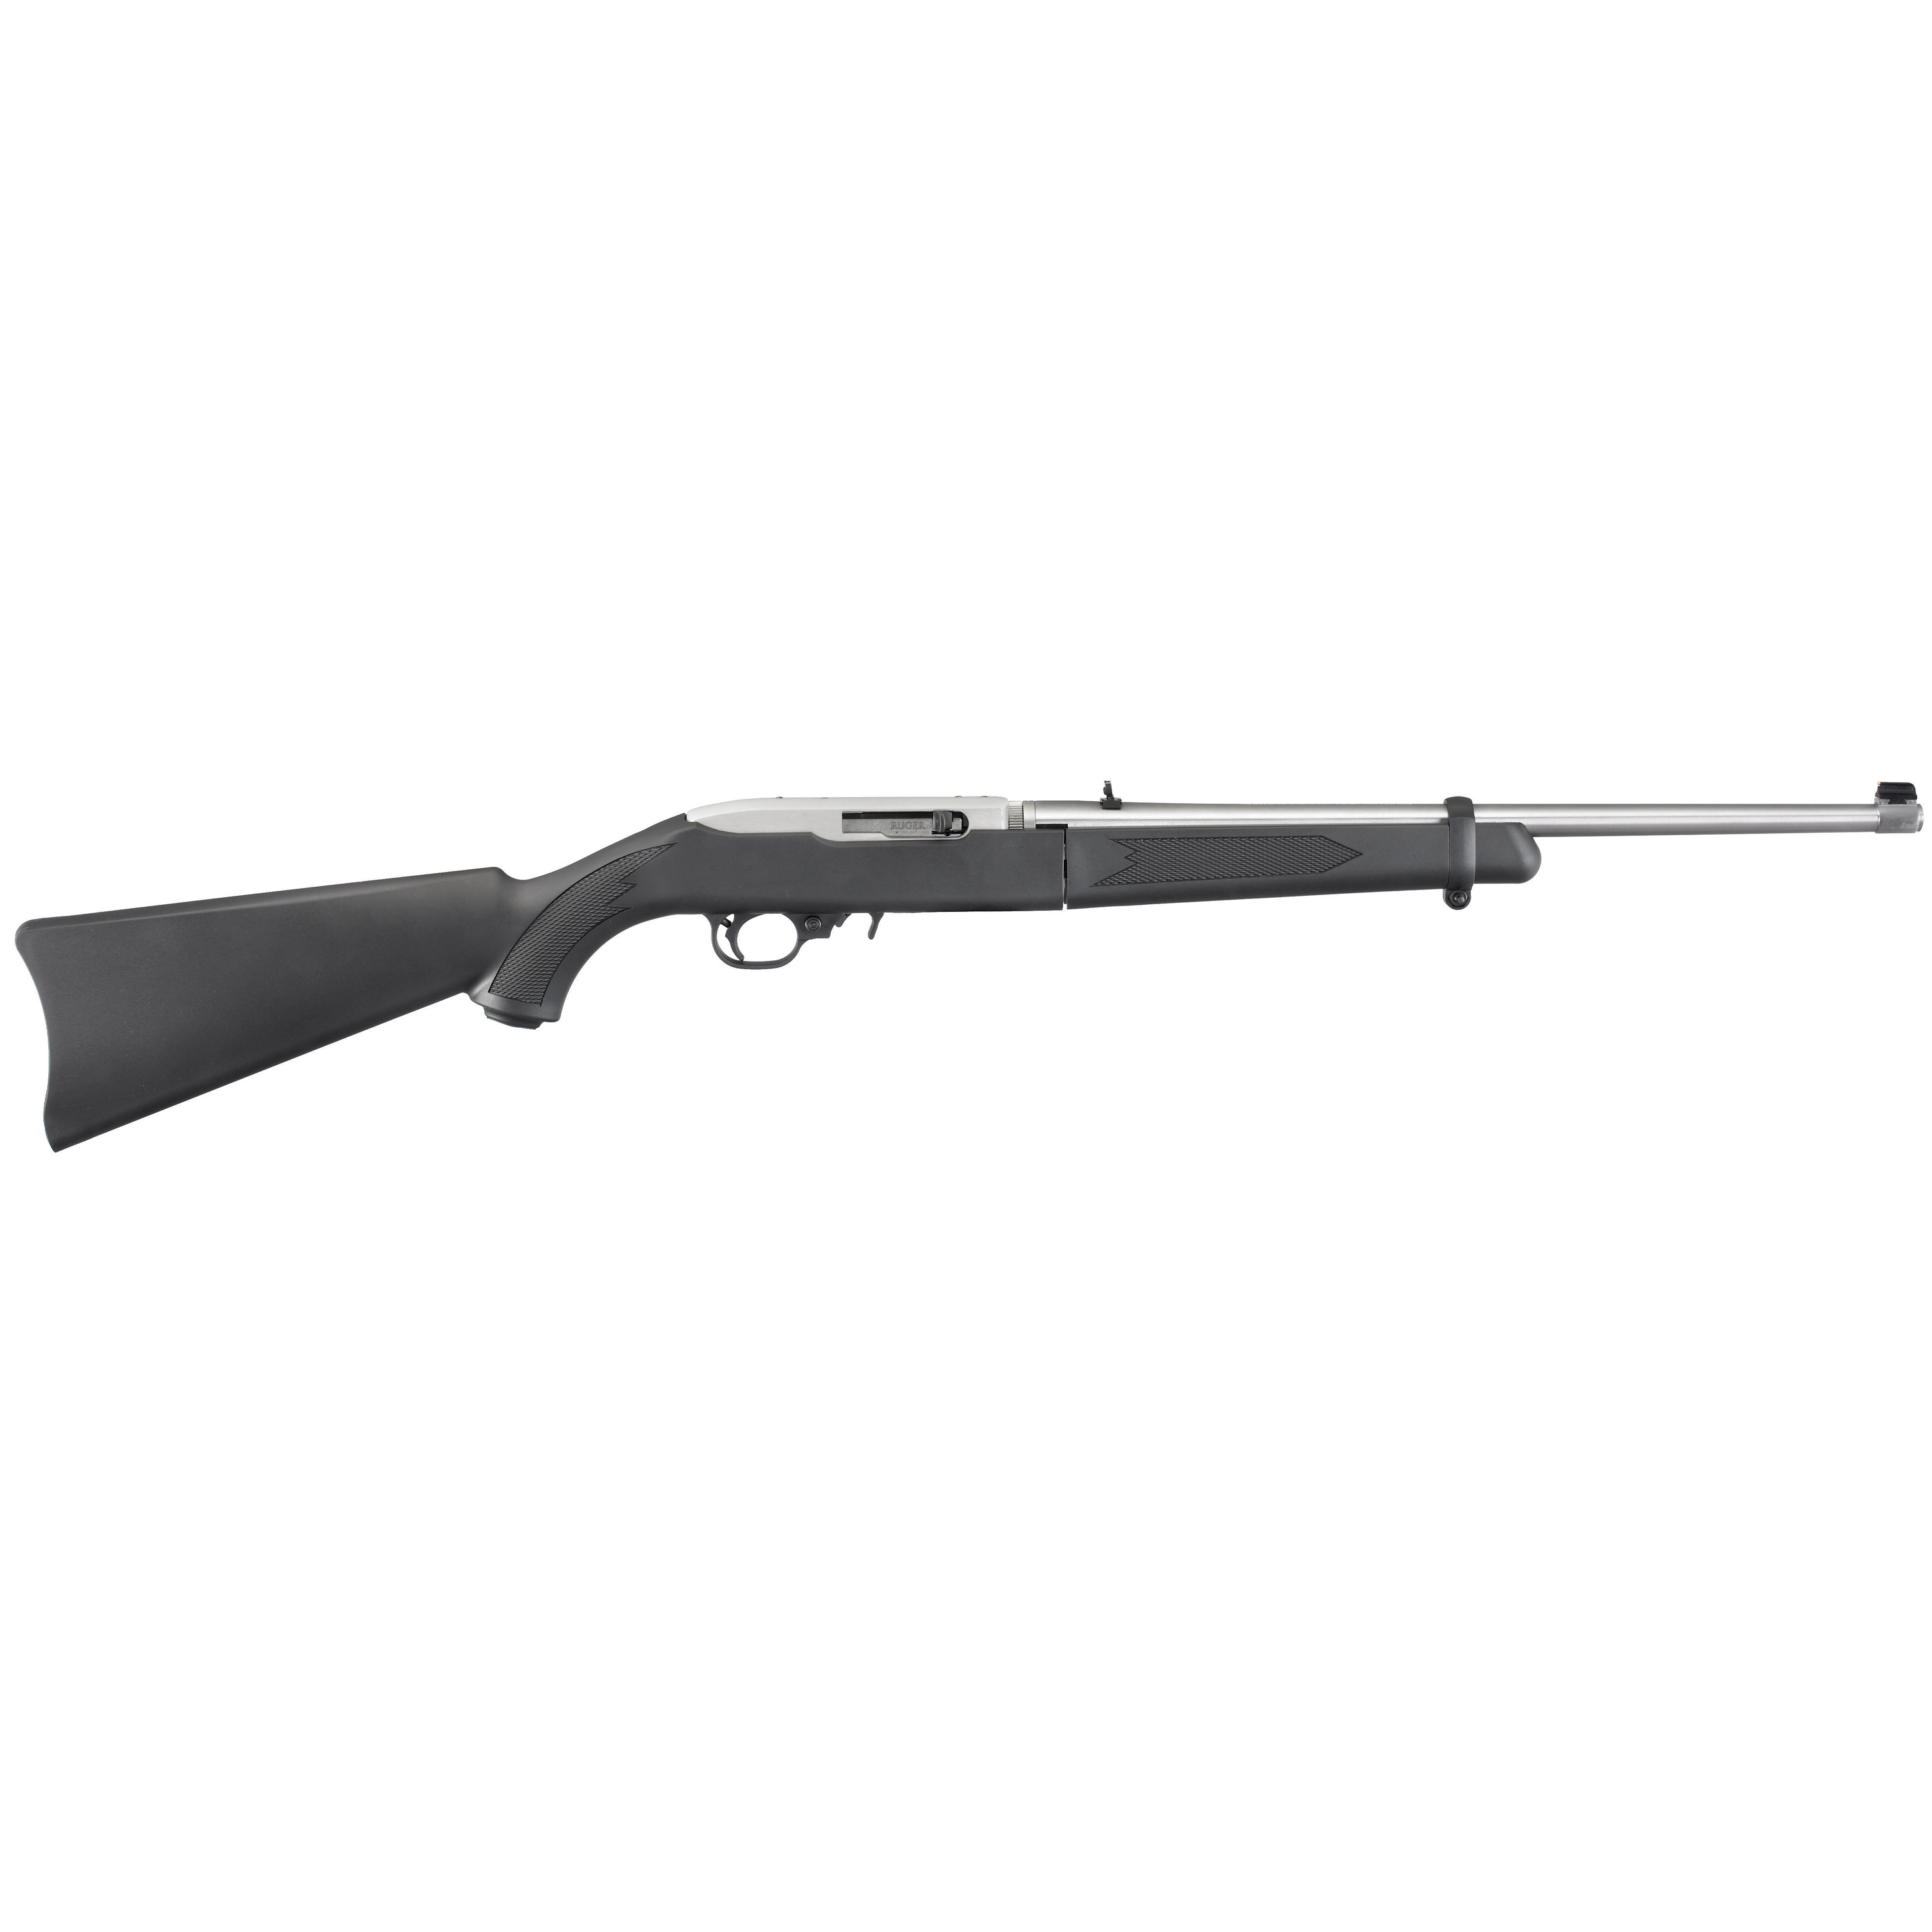 """The legendary 10/22 action"""" a tried and true Ruger design"""" ensures consistent"""" reliable performance. An Easy-to-use extended magazine release provides smooth"""" no-fuss removal of flush-mounted magazines and the Cold hammer-forged barrel is locked into the receiver by a unique"""" two-screw"""" V-block system."""